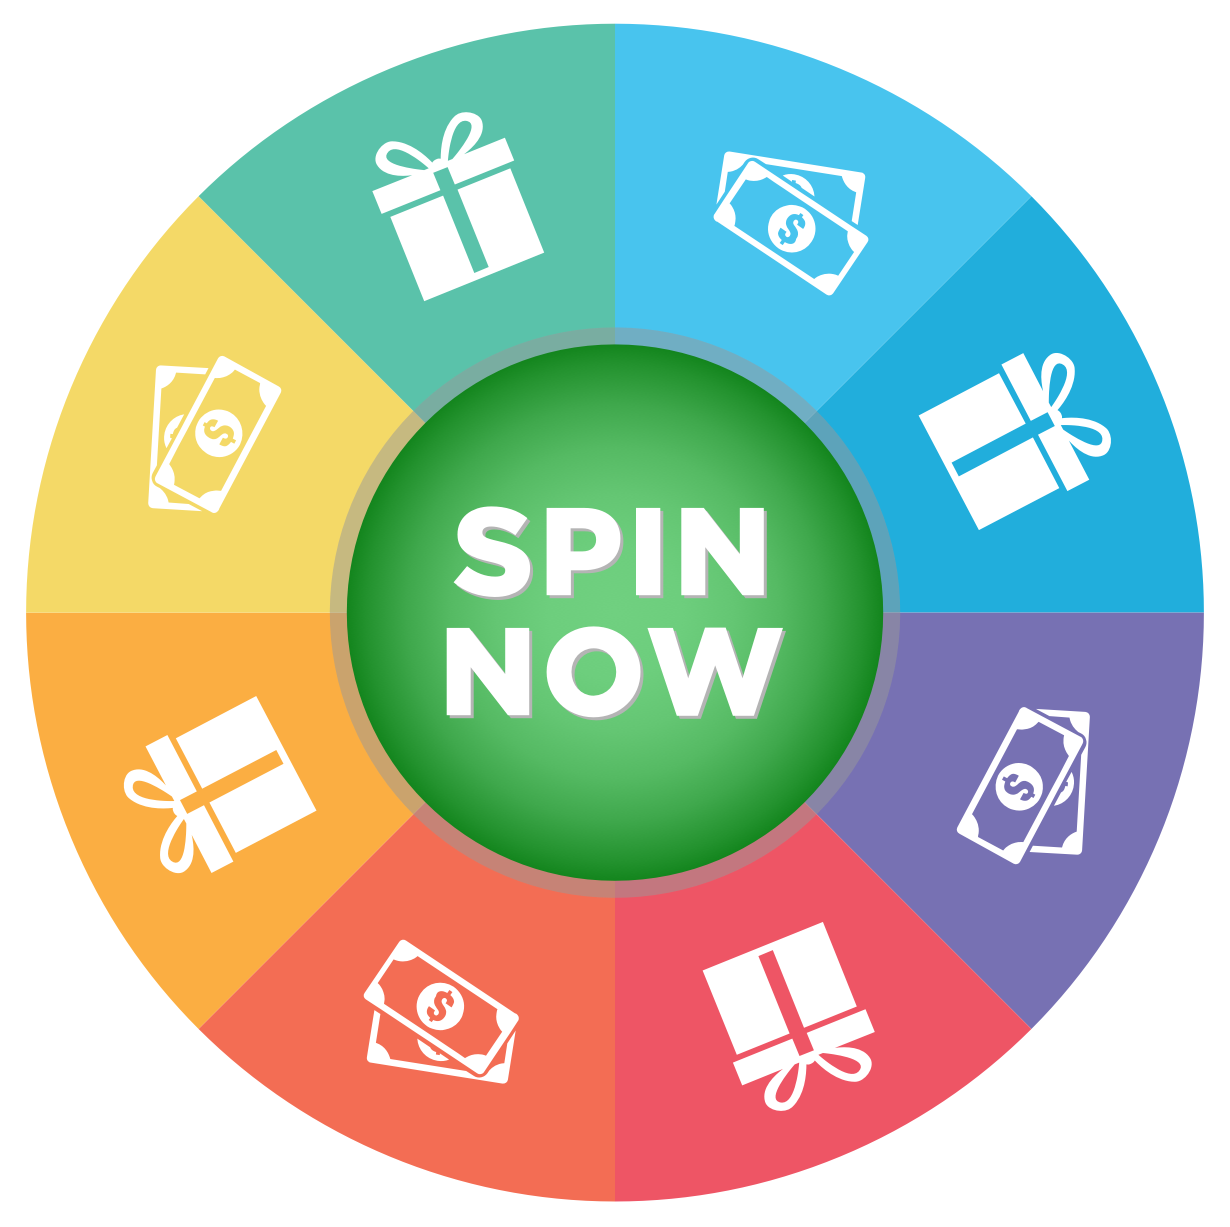 Spin vector circle design. And win with twinspires